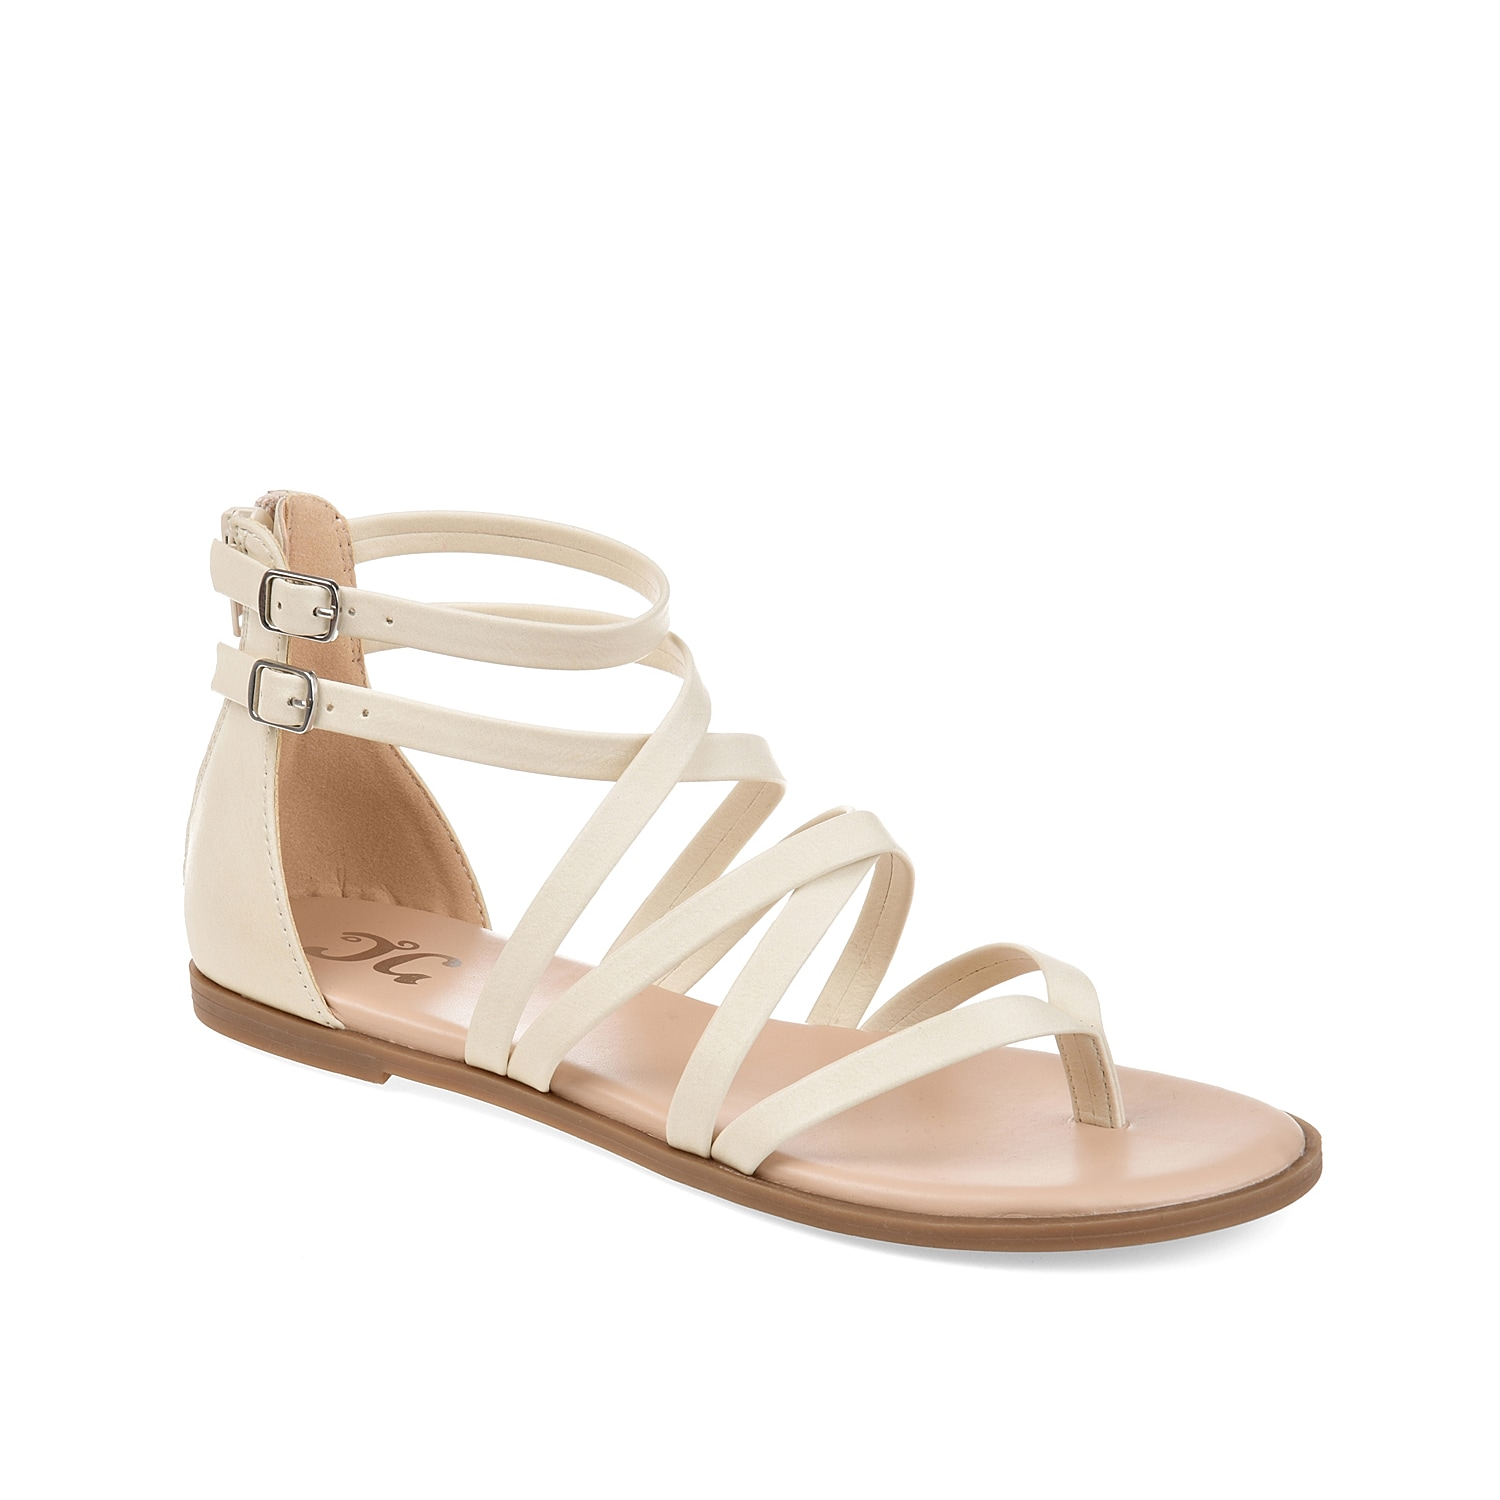 With a gladiator inspired silhouette, the Zailie sandal from Journee Collection will add a classic finishing touch to your warm weather look. Strappy styling and decorative buckles are upgraded with a cushioned footbed for all-day support.